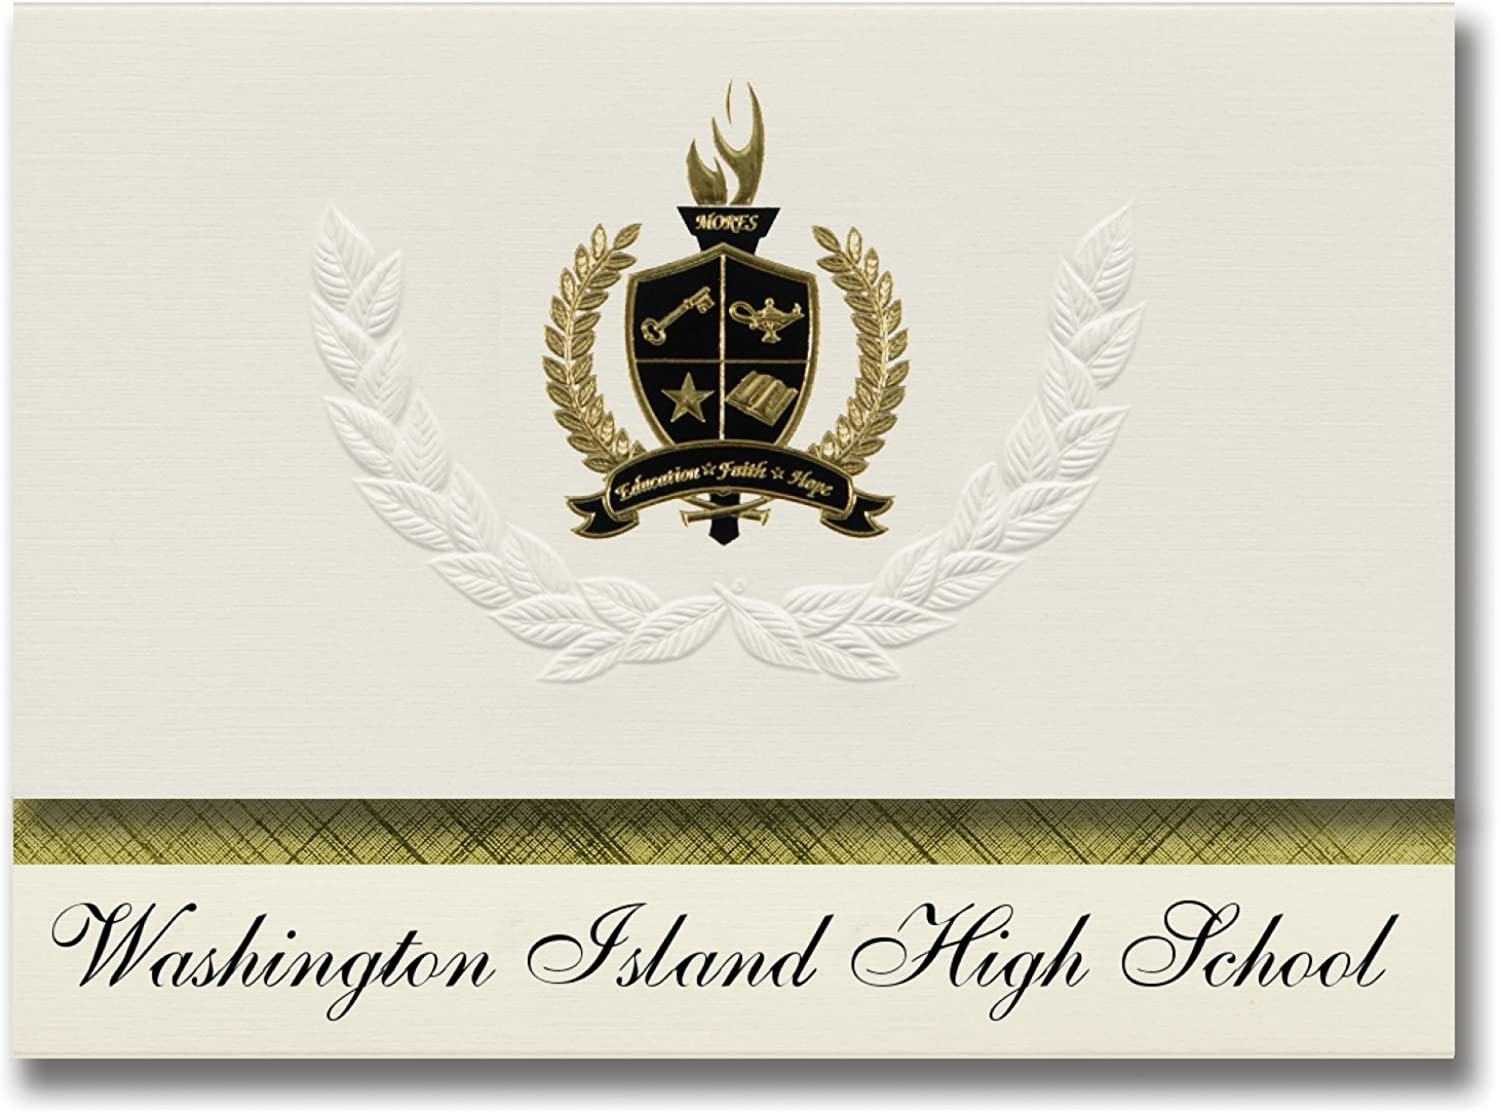 Signature Ankündigungen Washington Island High School (Washington Island, Wi) Wi) Wi) Graduation Ankündigungen, Presidential Elite Pack 25 mit Gold & Schwarz Metallic Folie Dichtung B078TT2LDM   | Kaufen